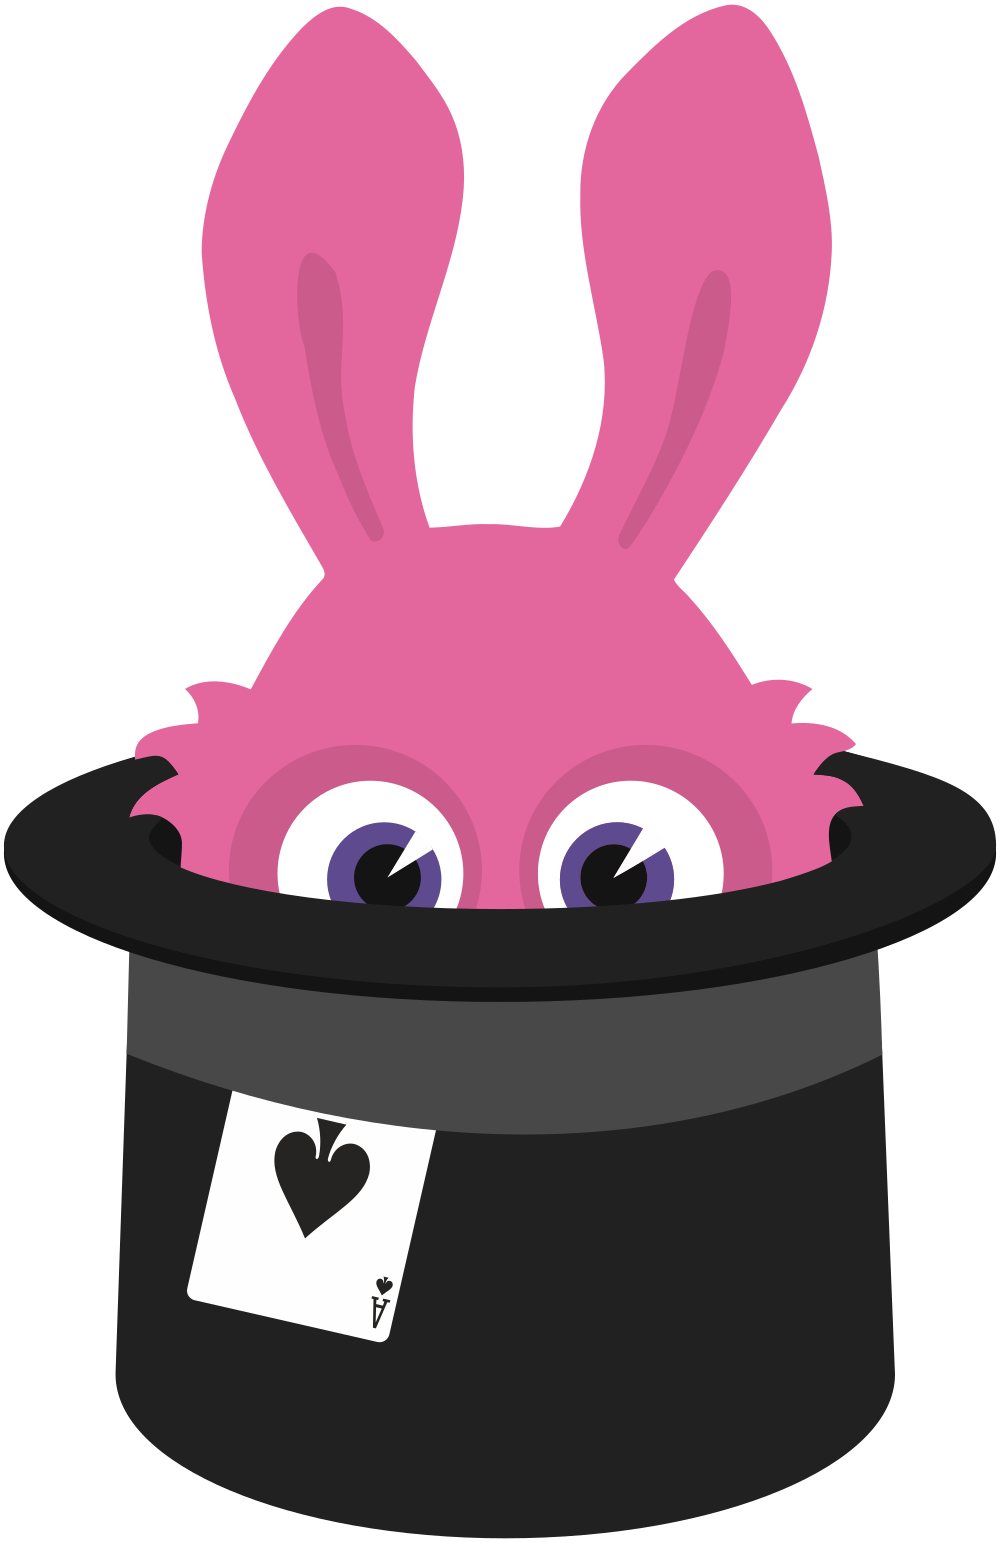 Fedora clipart magic. Onlinelabels clip art rabbit